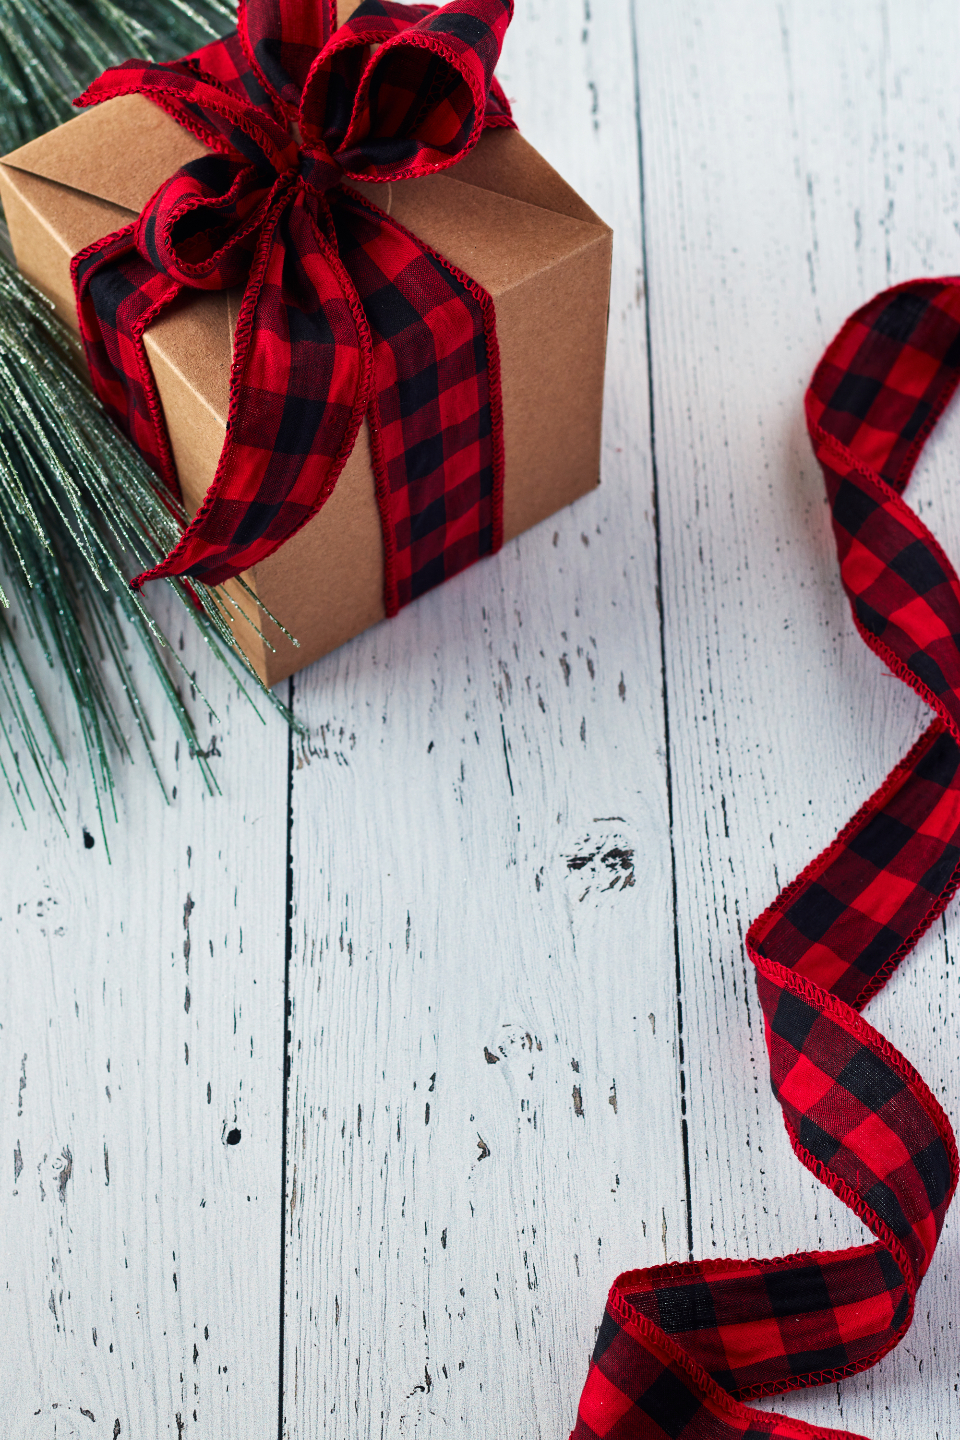 seasonal backgrounds christmas flat lay ribbon pine tree festive copyspace holiday red merry xmas background box gift rustic wooden